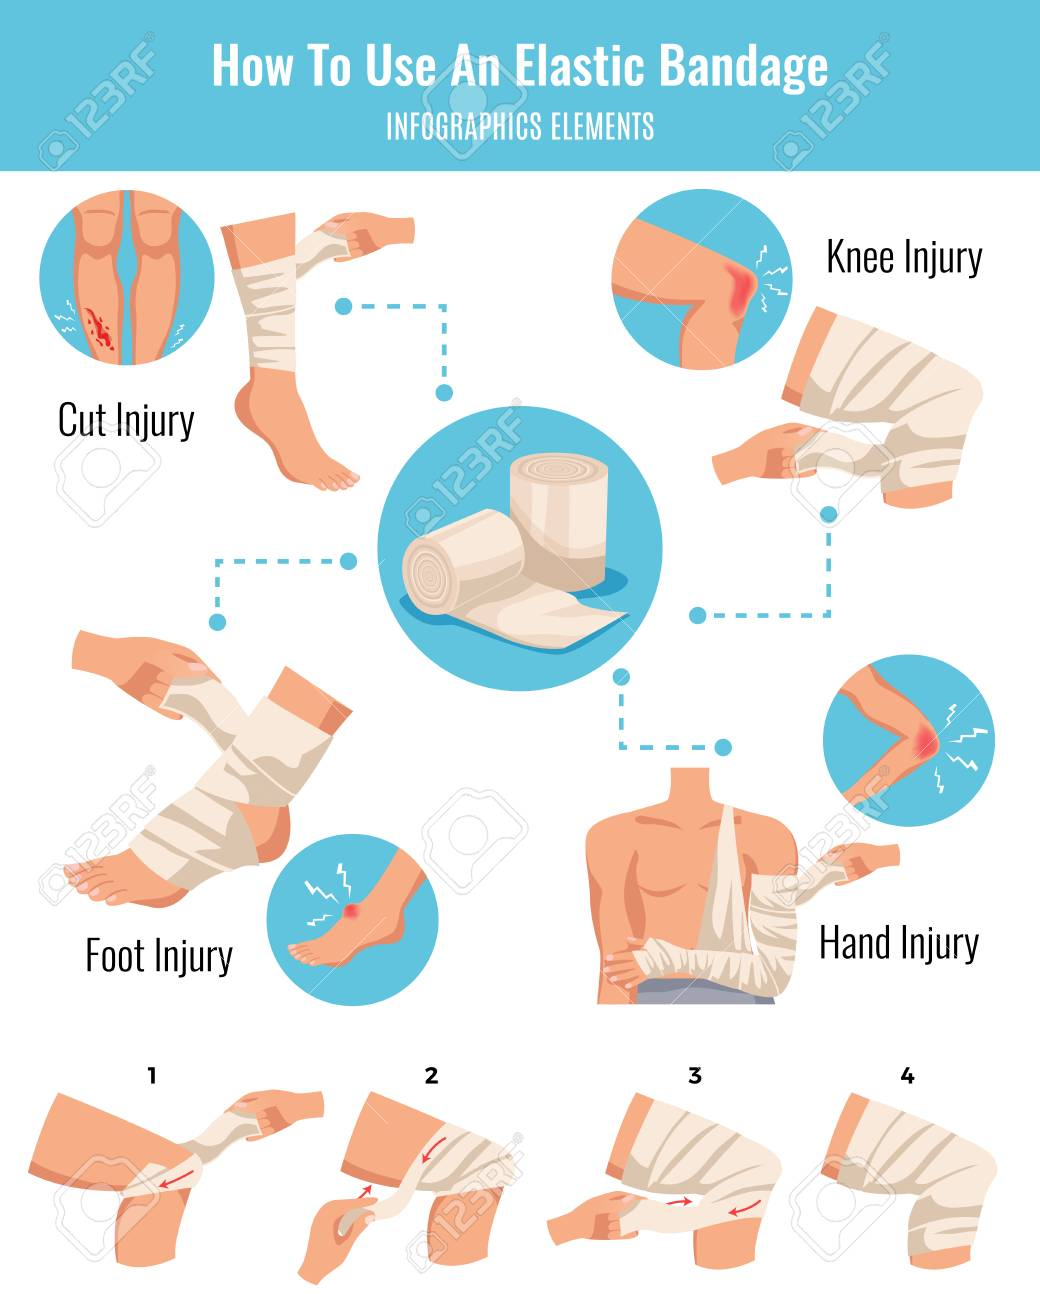 Elastic bandage application tips for cuts and bruise limbs injuries treatment flat infographic elements schema vector illustration - 108303628